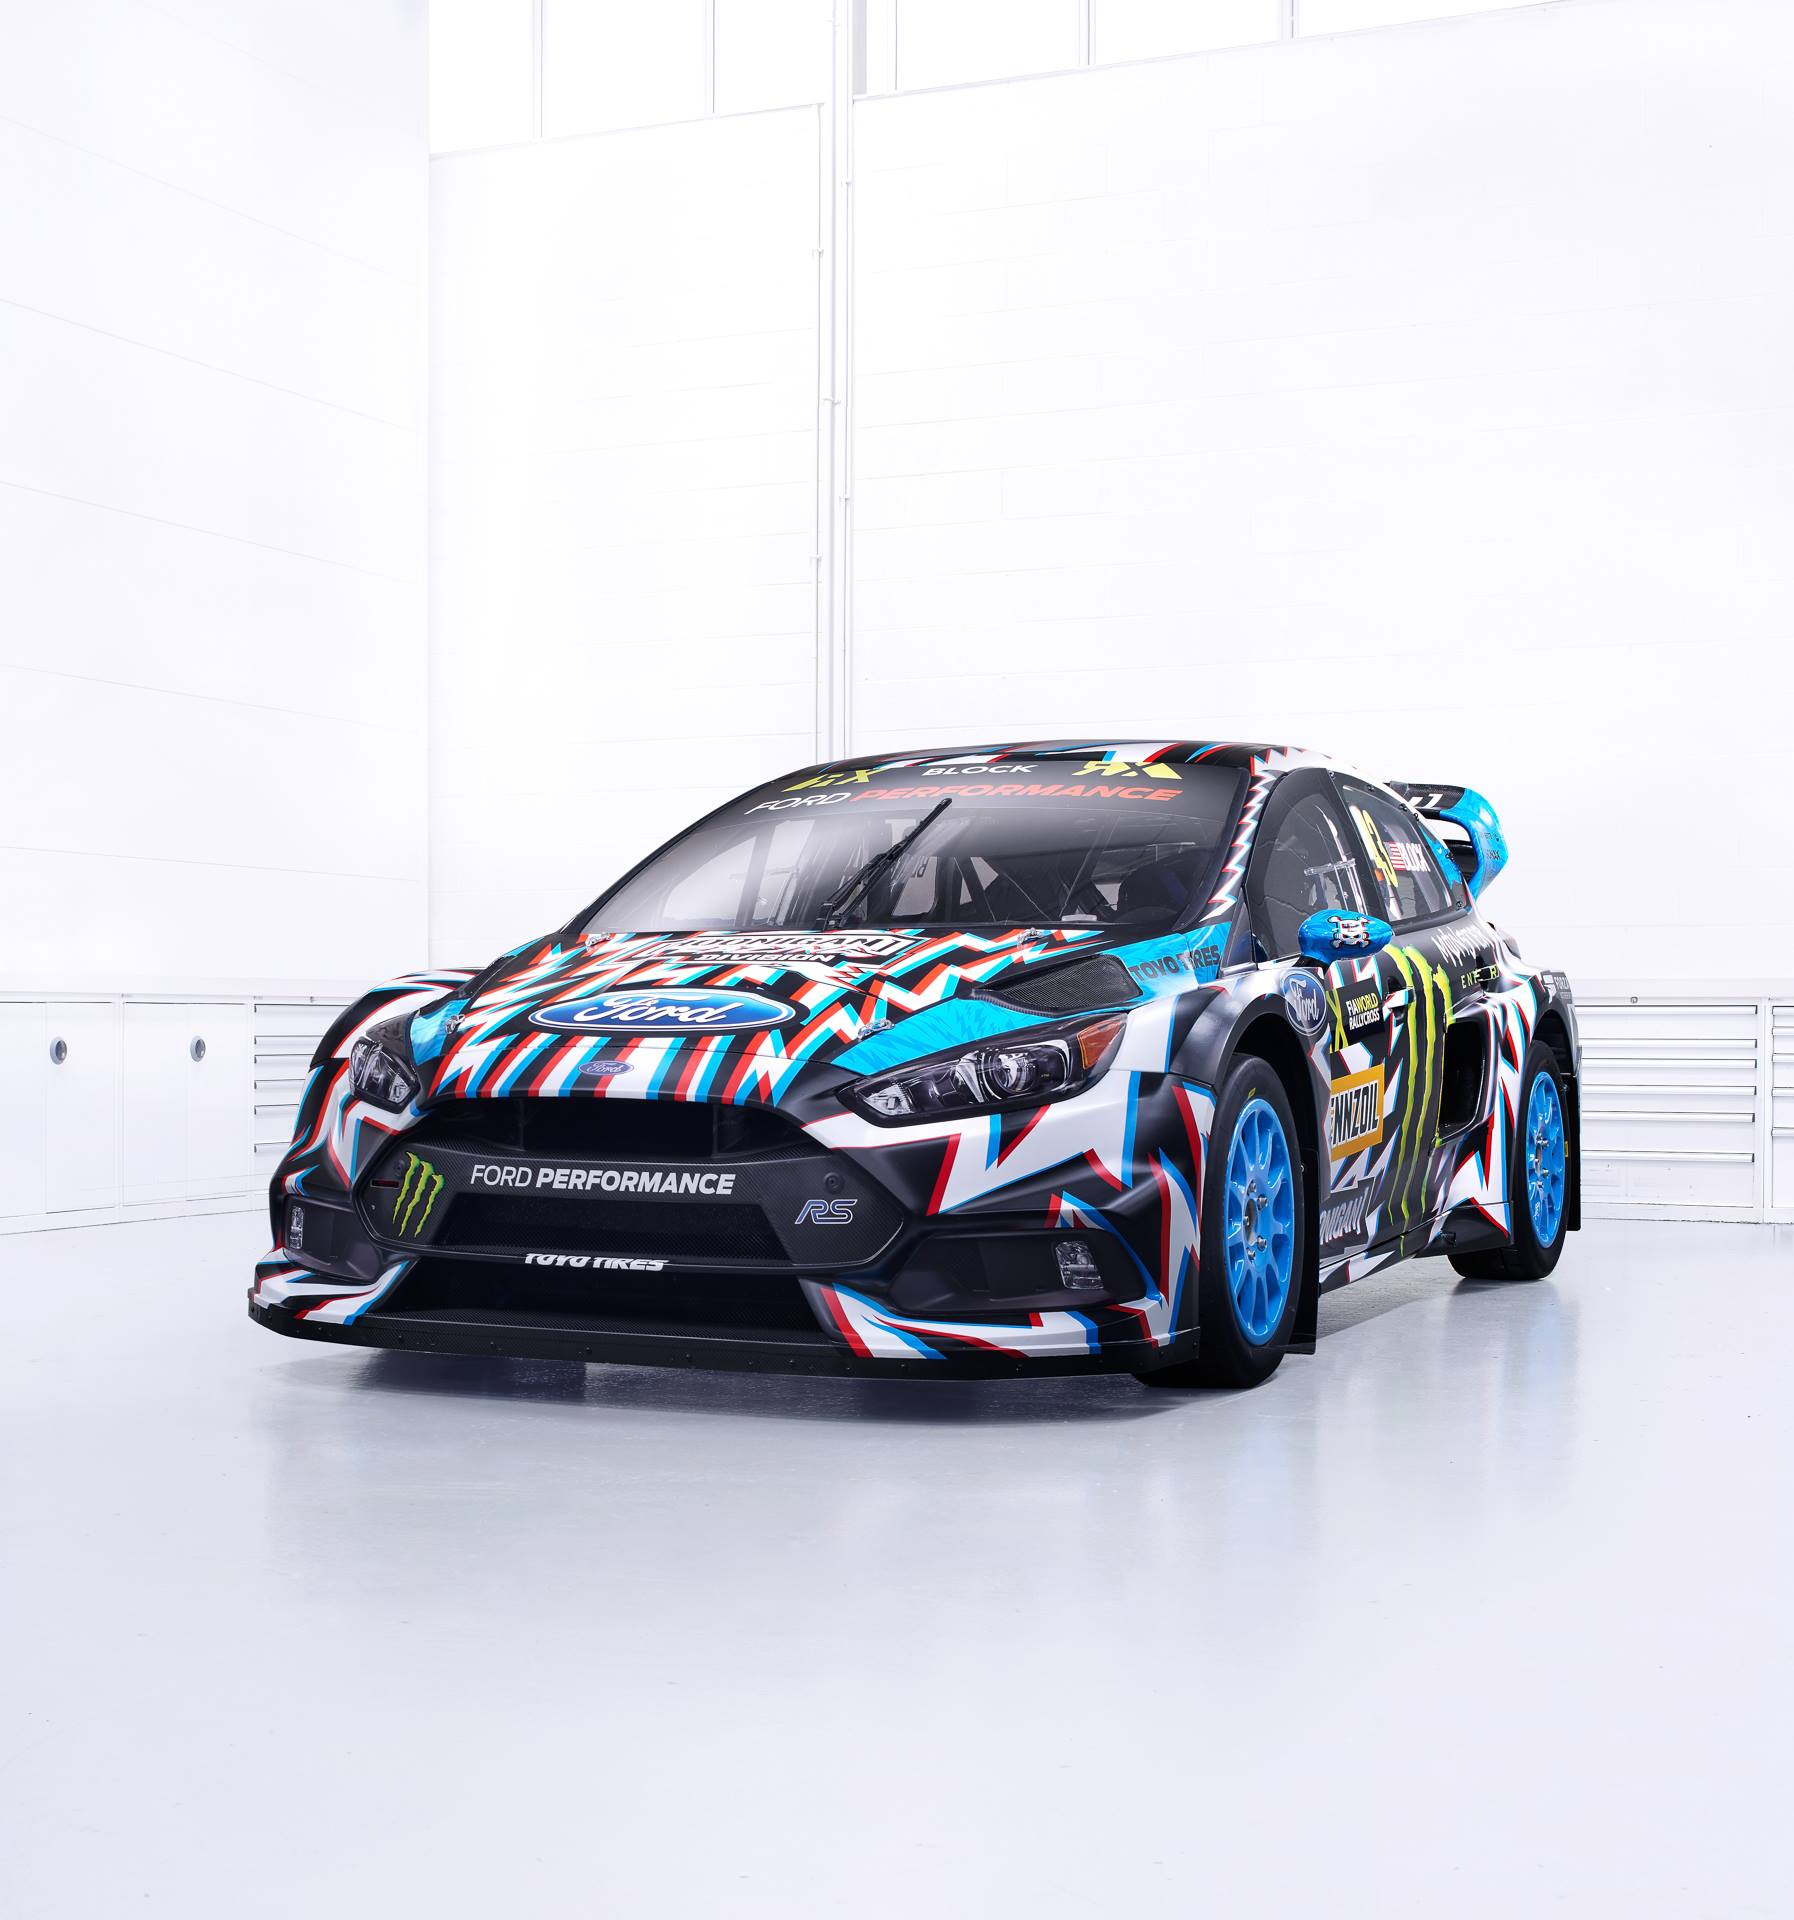 Ford Focus RS RX livery 2017 (4)